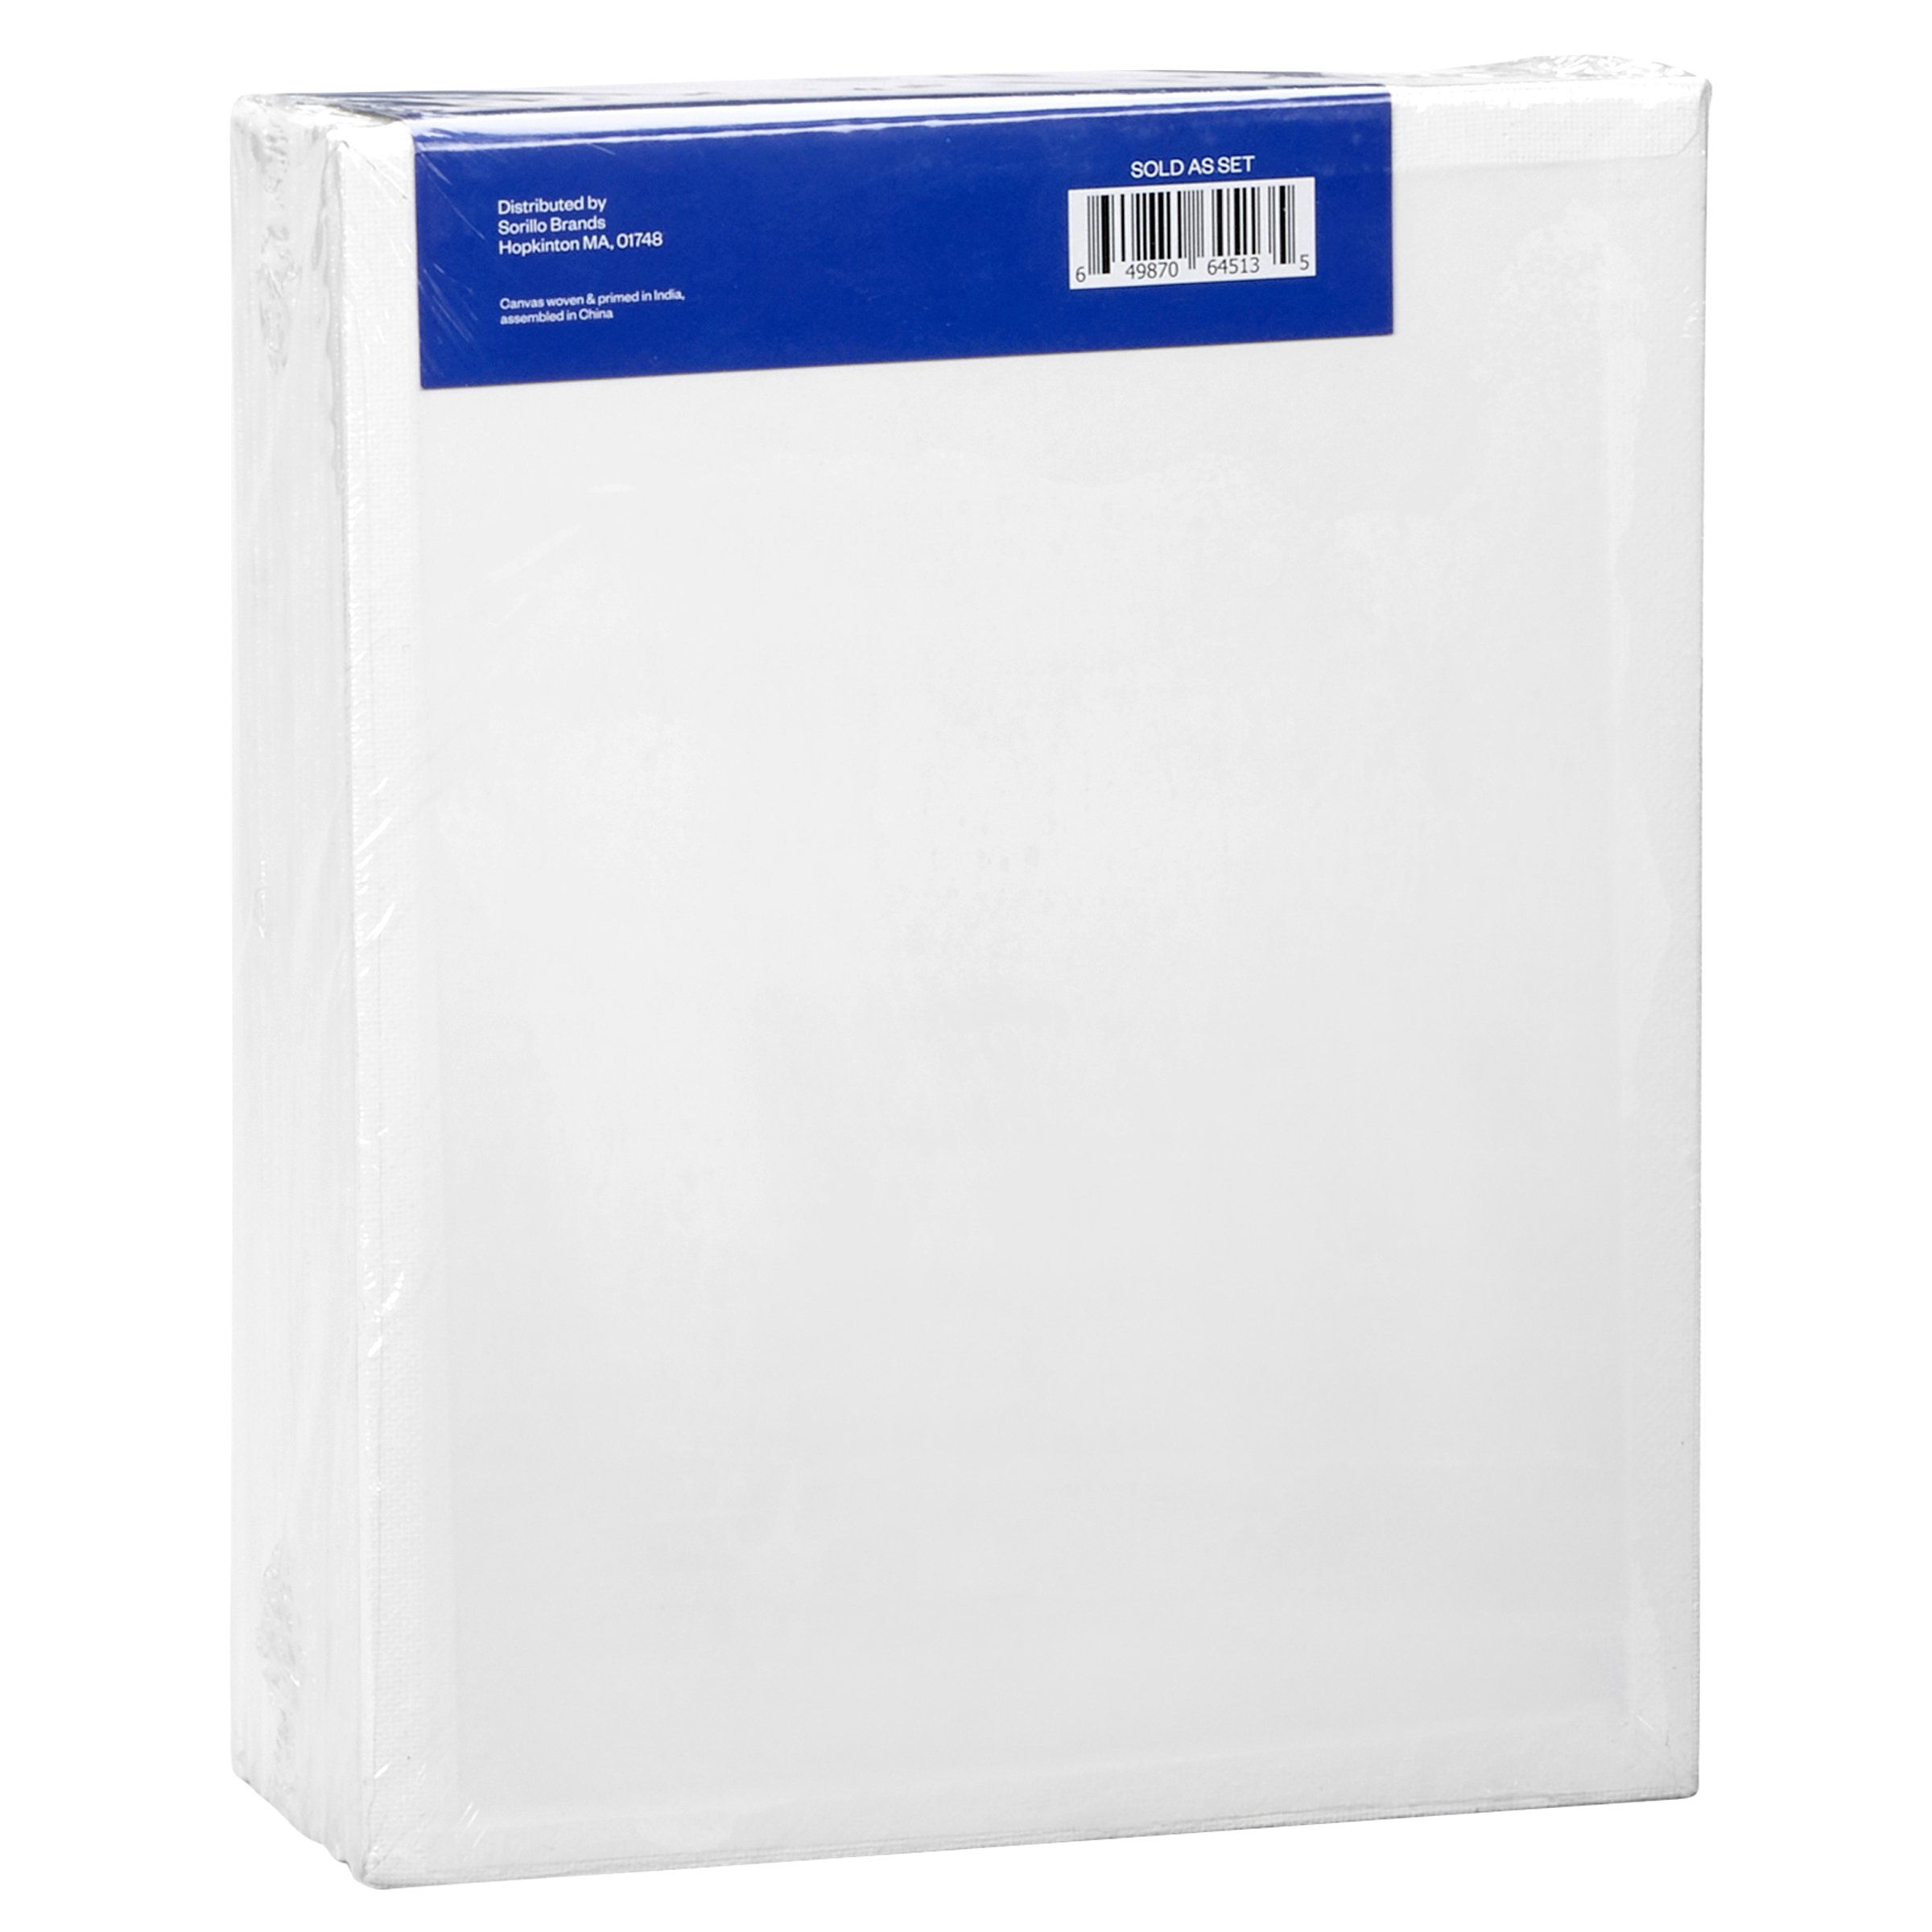 Artlicious - 8x10 Classroom Super Value 24 Pack - Artist Canvas Panel Boards for Painting by Artlicious (Image #2)